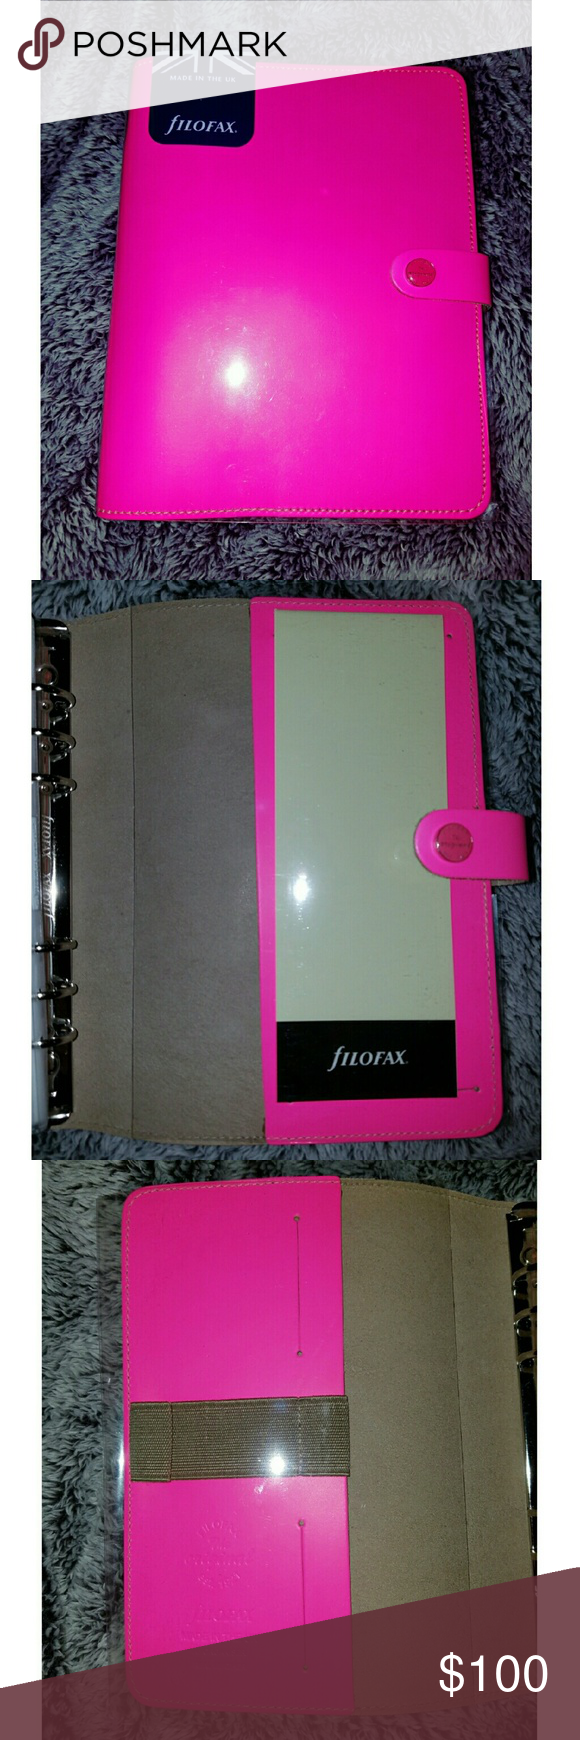 Like New Filofax Fluoro Pink A5 Planner I'm selling this A5 Filofax planner The Original, it is hard to find and basically new...it has not been taken out of its plastic covering since I've purchased it. It was very lightly used and never taken out of my house!   However it does NOT come with any planner pages for the 2016 or 2017 year. But I will leave some pink and white lined pages.    Thanks for looking!  :) Filofax  Other